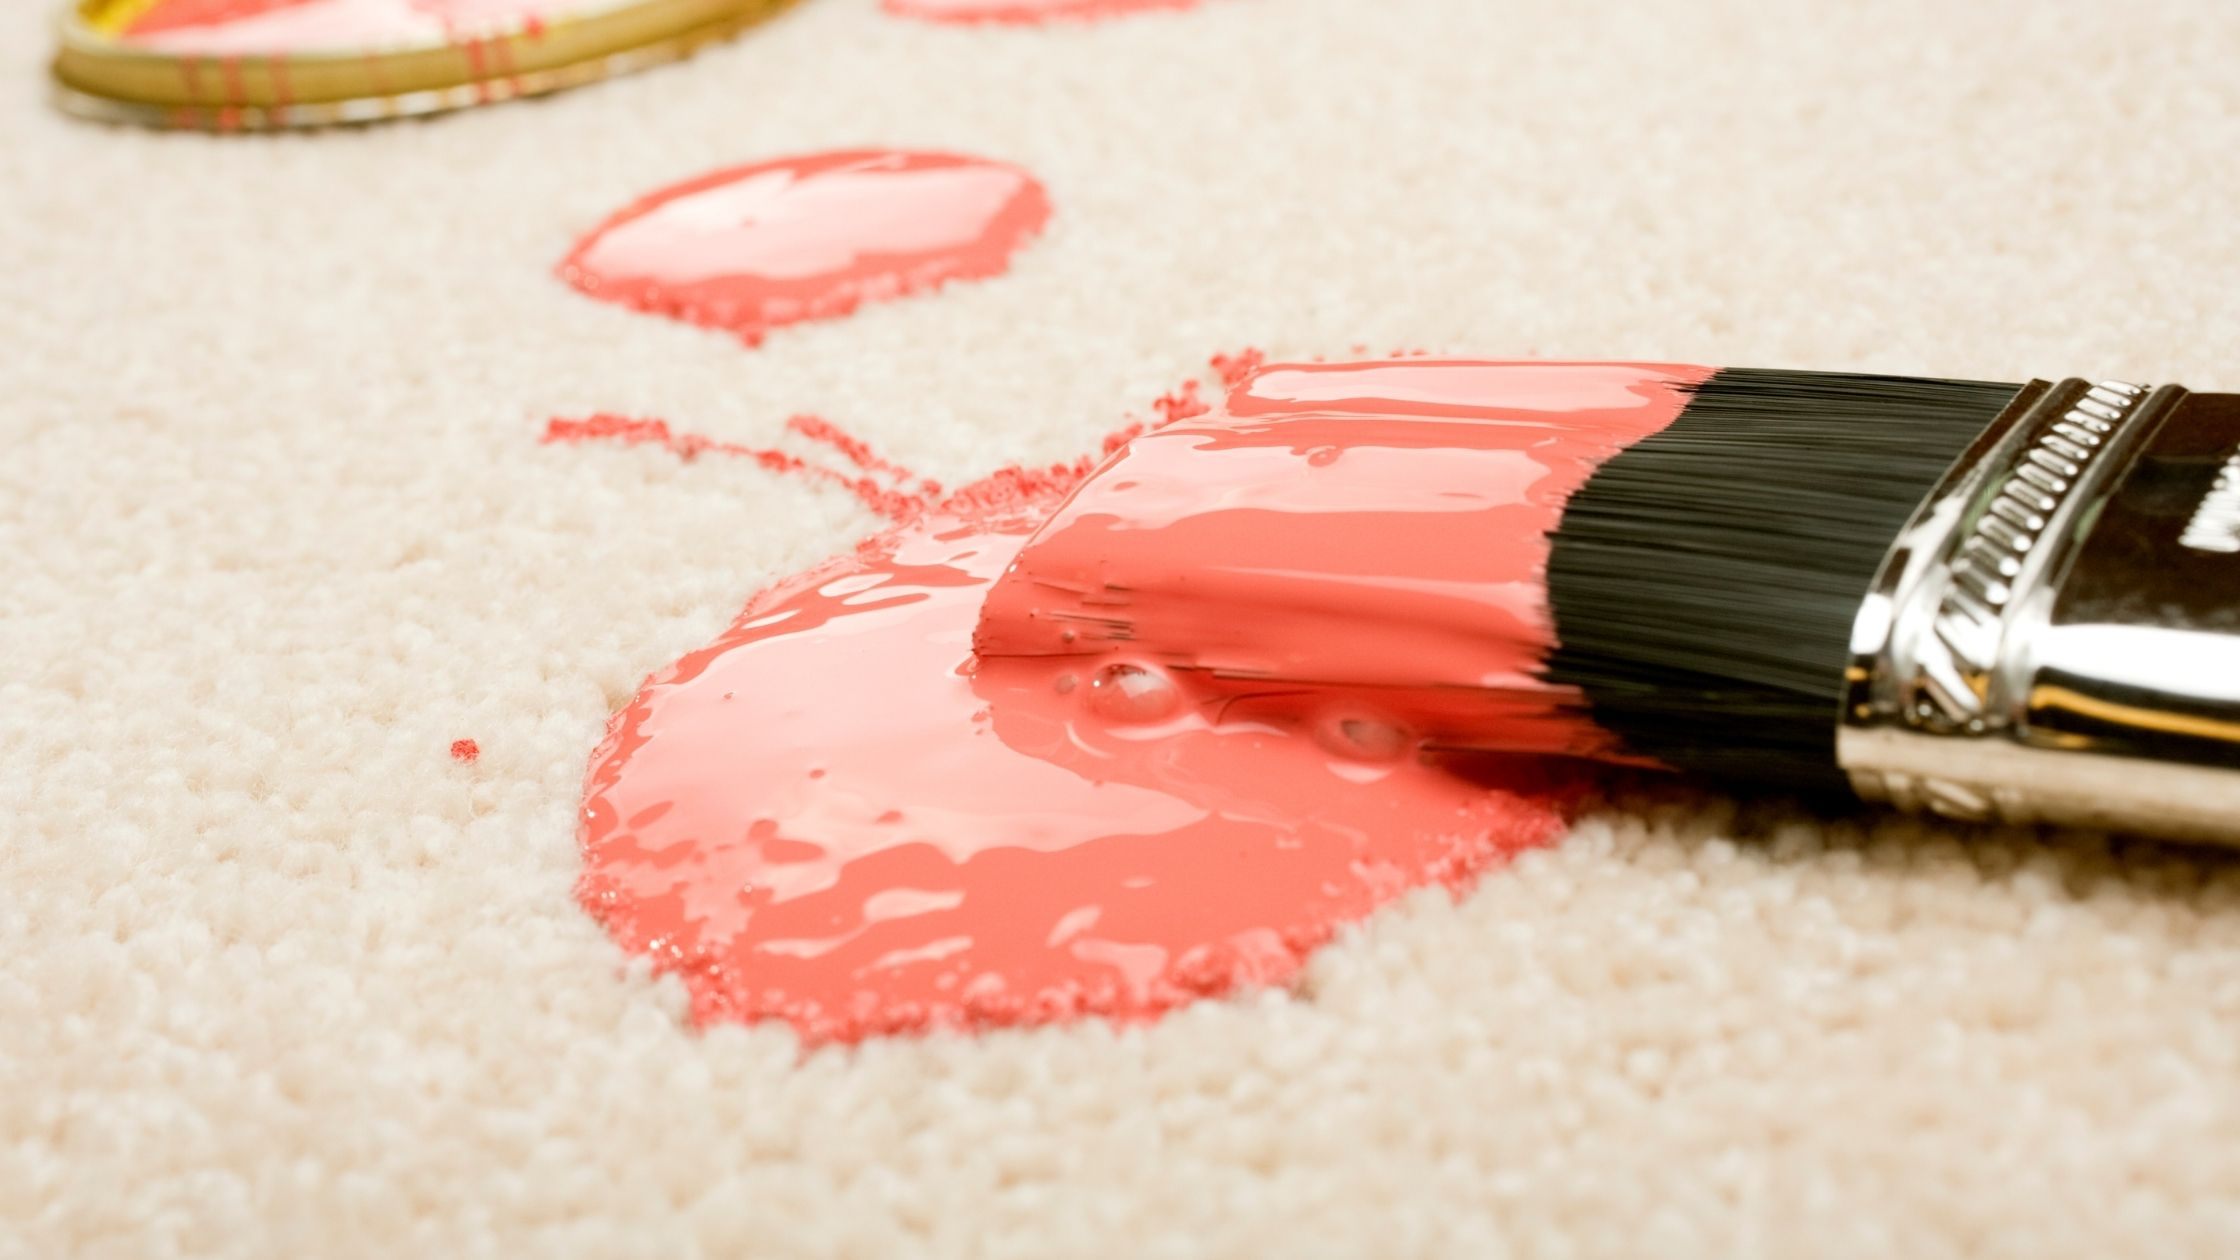 How do you get acrylic paint out of carpet